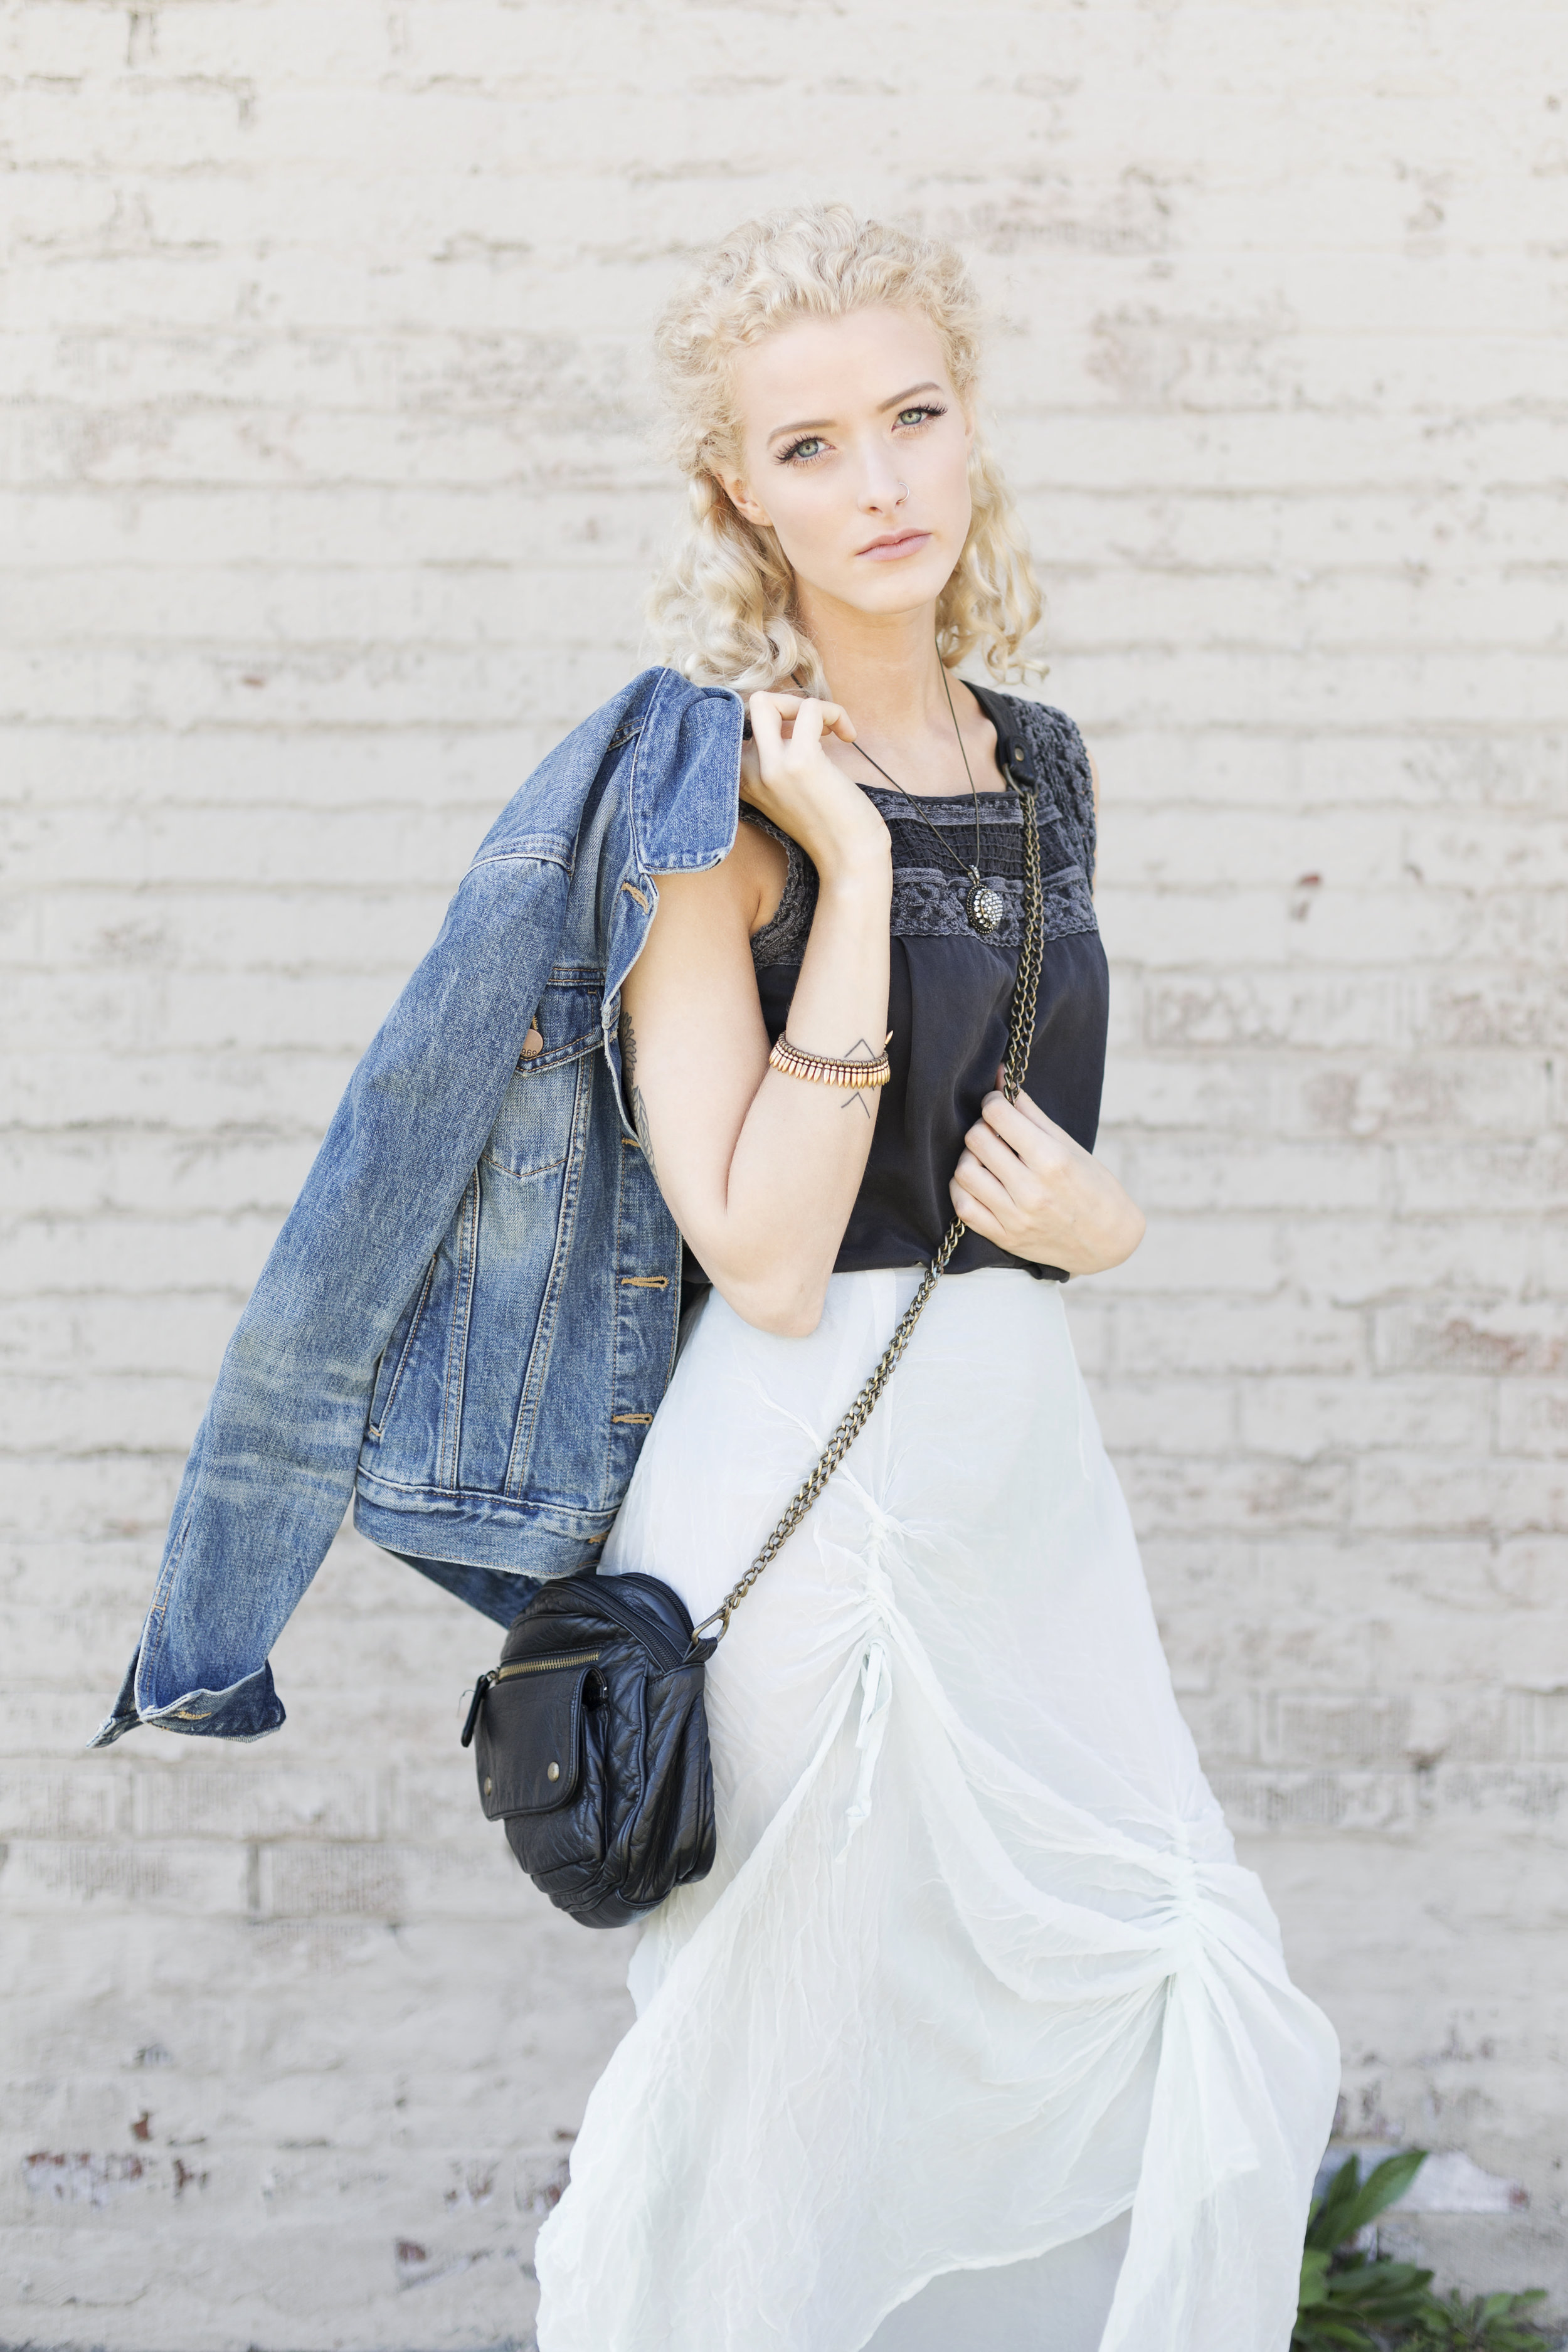 A trusty denim jacket is perfect for popping in and out of shops